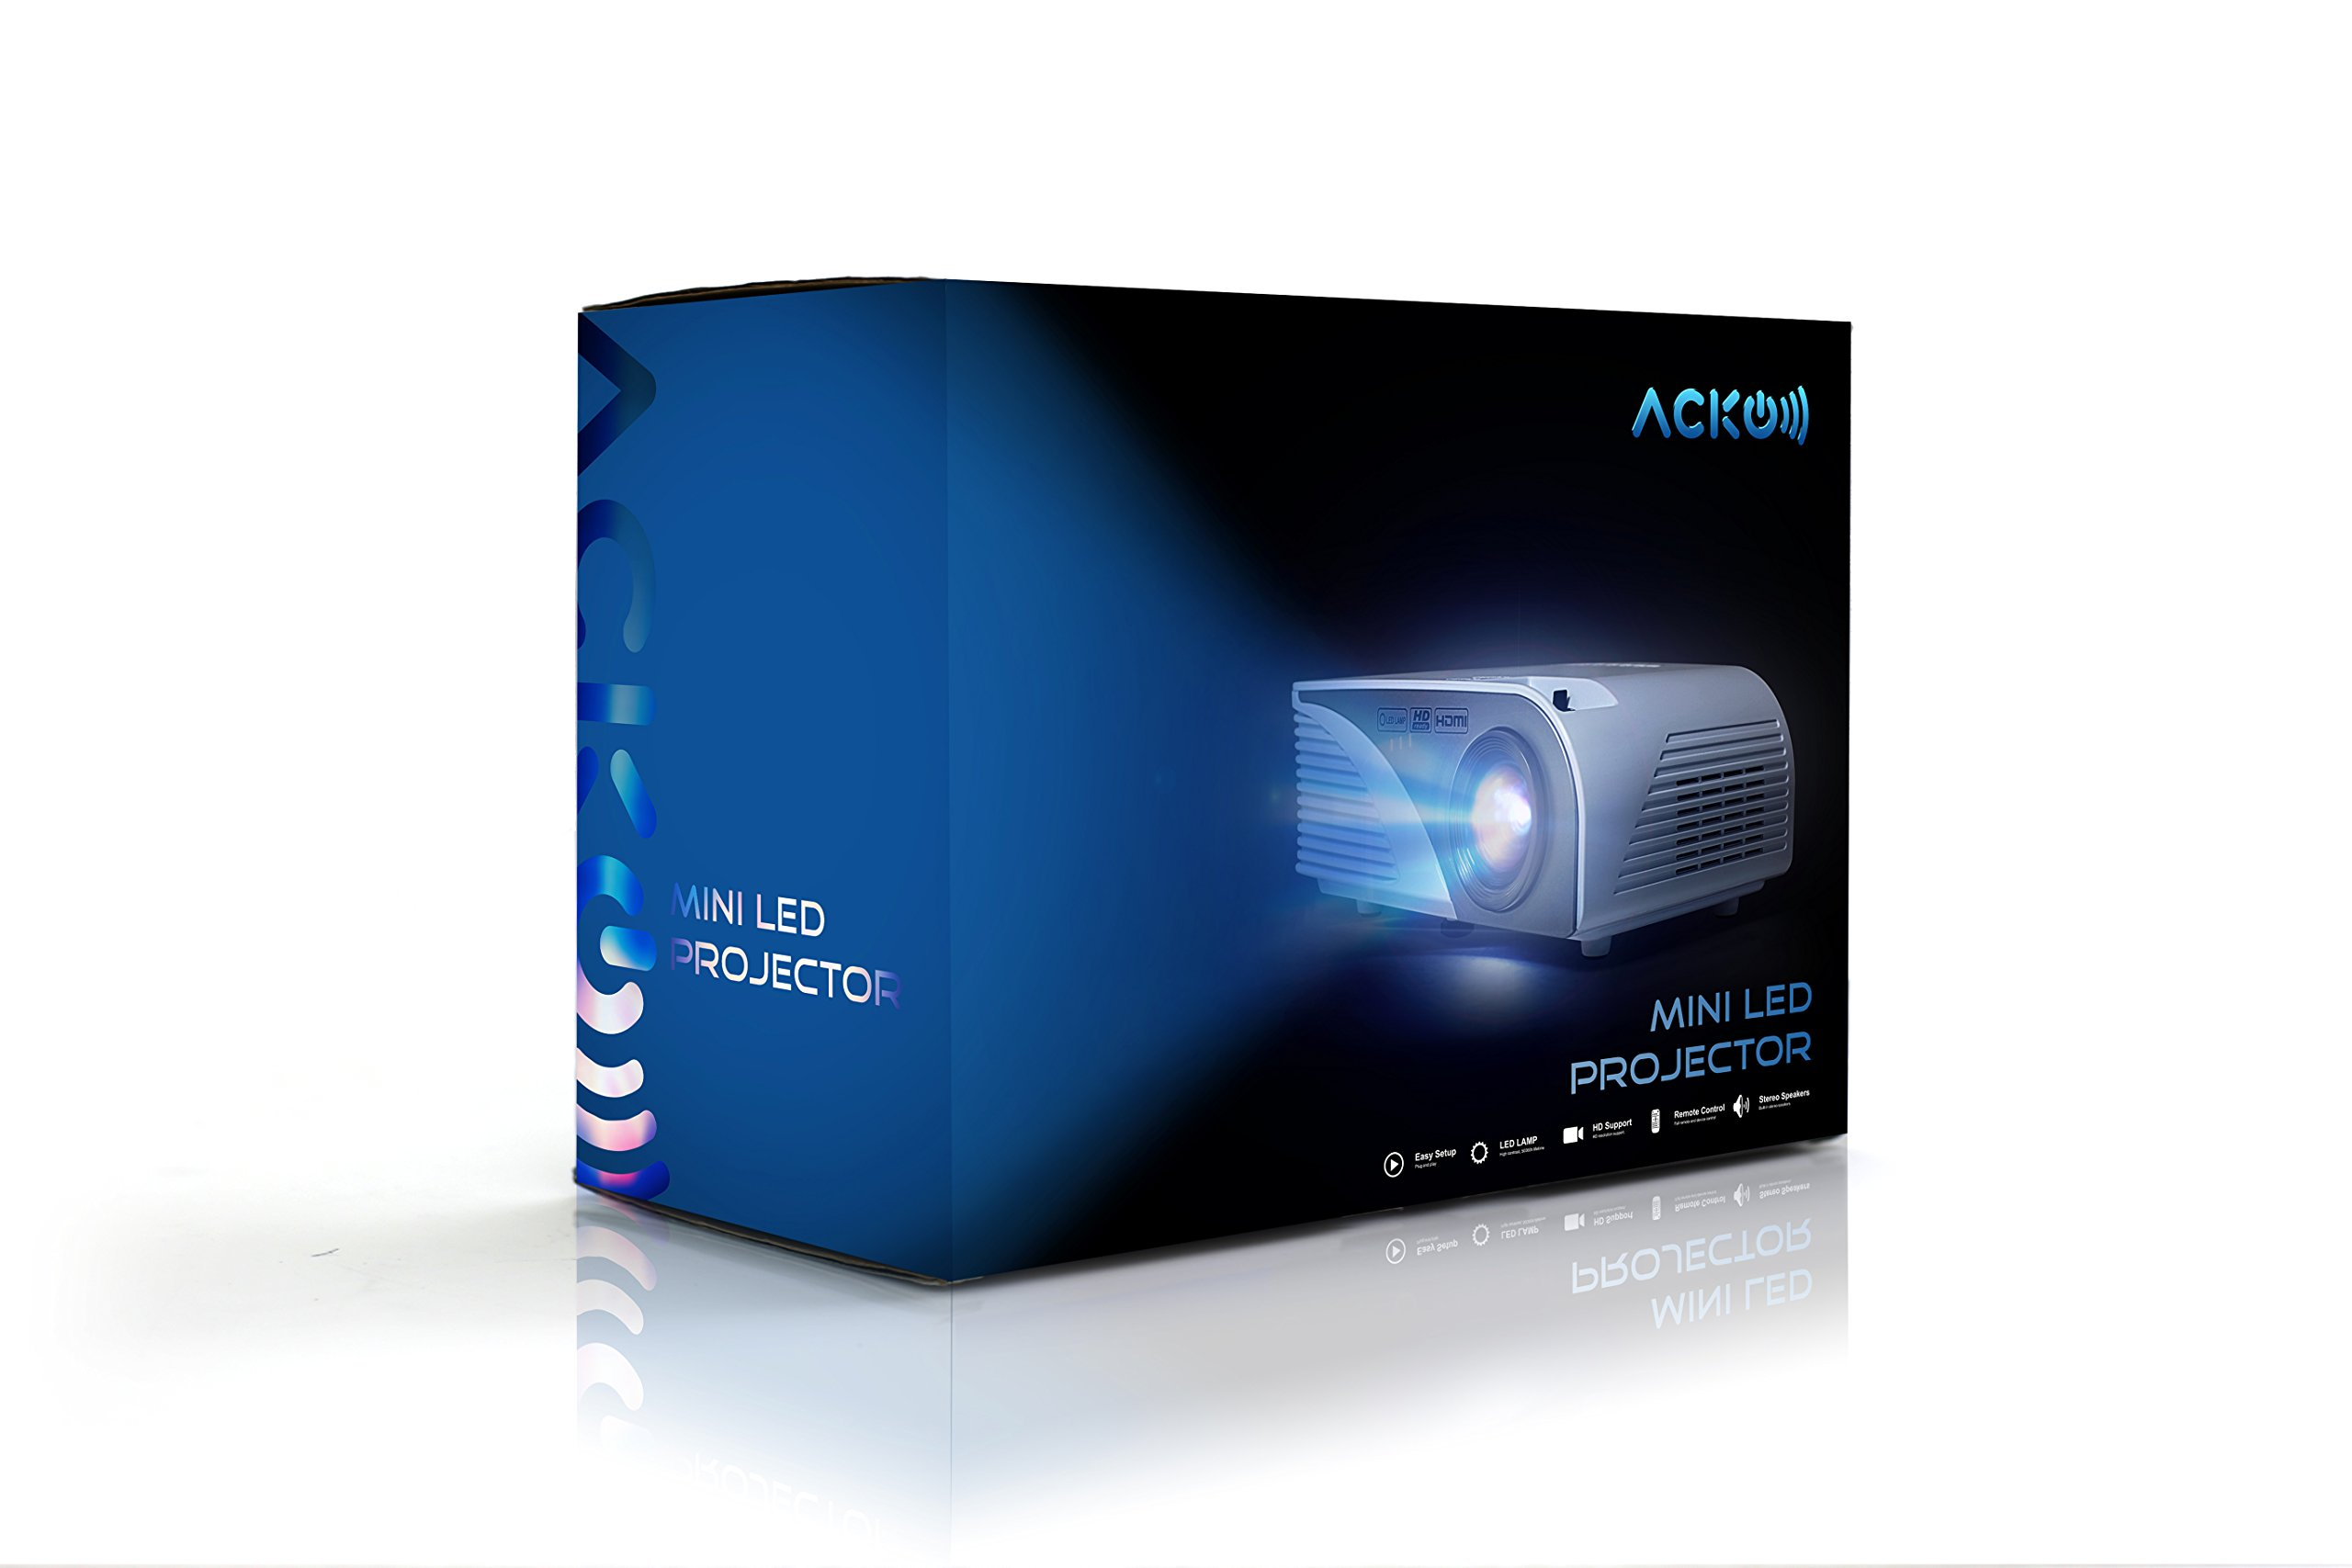 Acko Portable Mini HD LED Video Projector Office Home Theater 1200 LM Multimedia Outdoor 20''-150'' HDMI VGA USB AV SD Audio 1080P Smart Phone Tablet PC Computers Laptops White Warranty Included by EpandaHouse (Image #8)